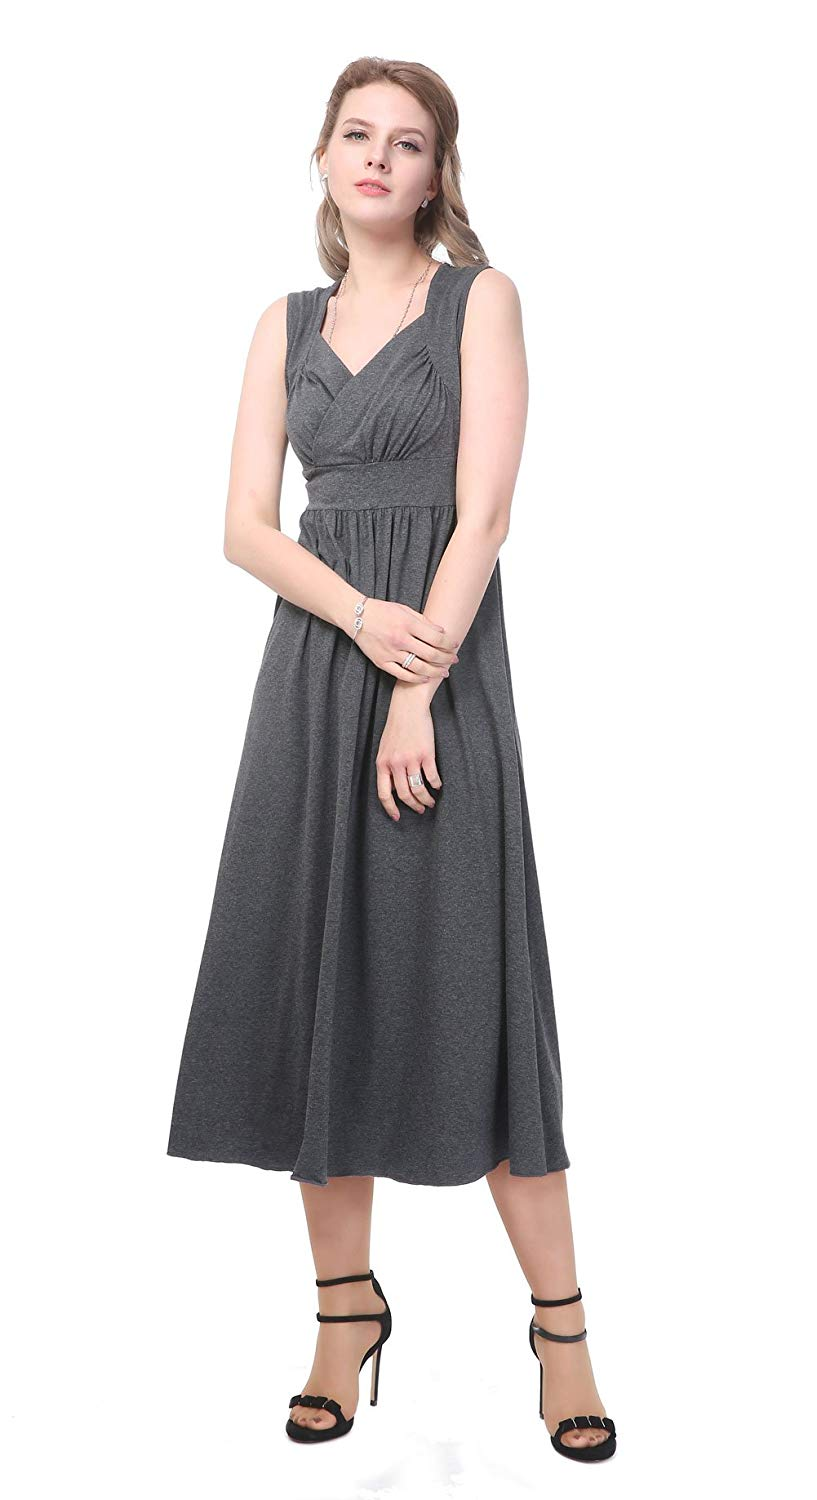 eedbba639ede1 Cheap Infinity Dress Maxi, find Infinity Dress Maxi deals on line at ...